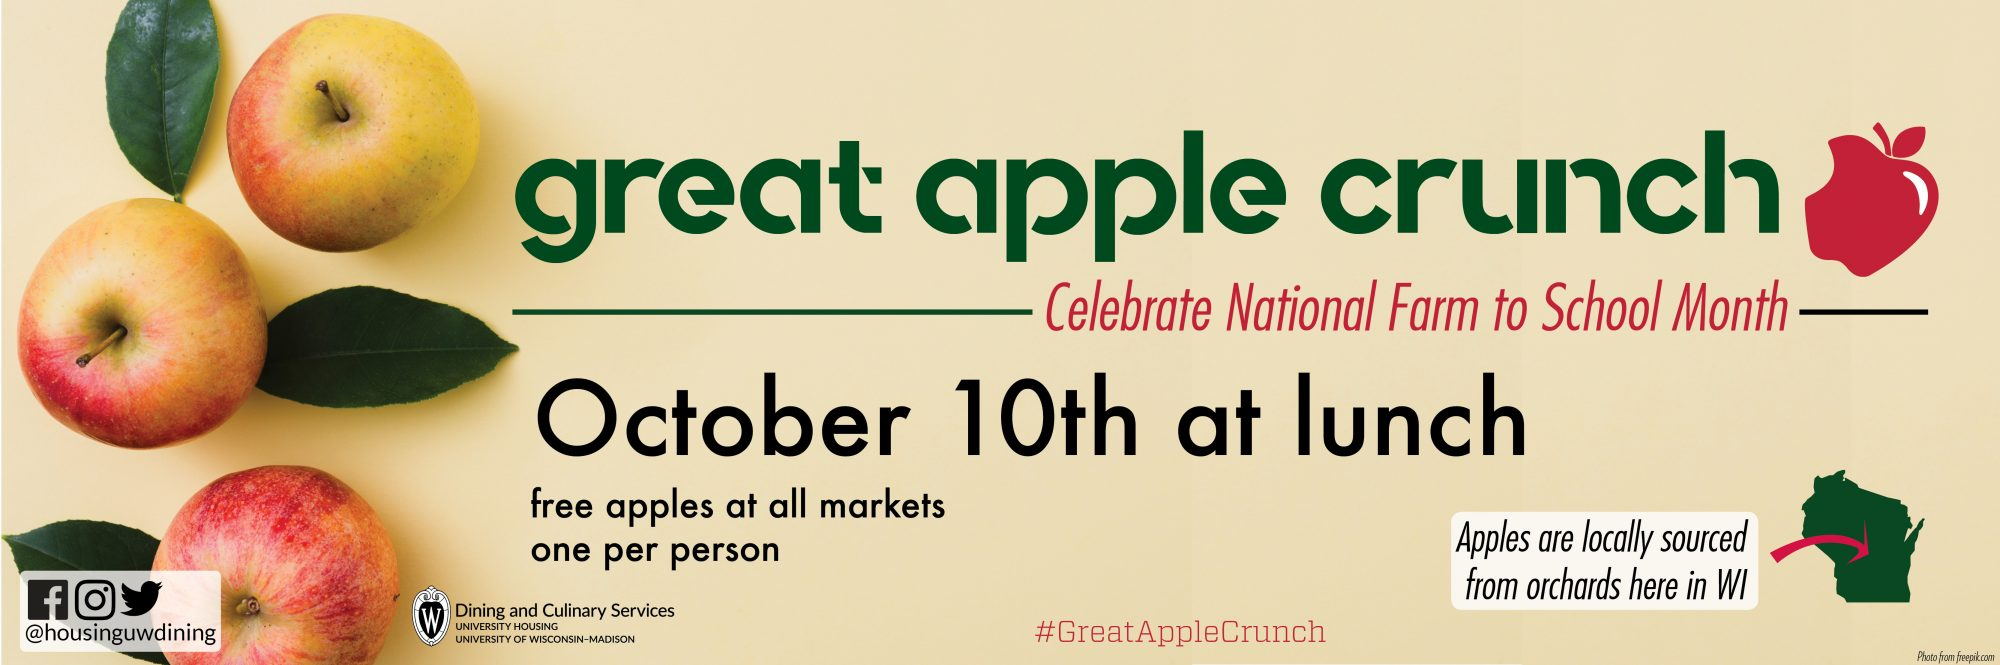 Great Apple Crunch, October 10 at lunch. Free apples at all markets. One person. #GreatAppleCrunch Apples are locally sourced from orchards here in WI.